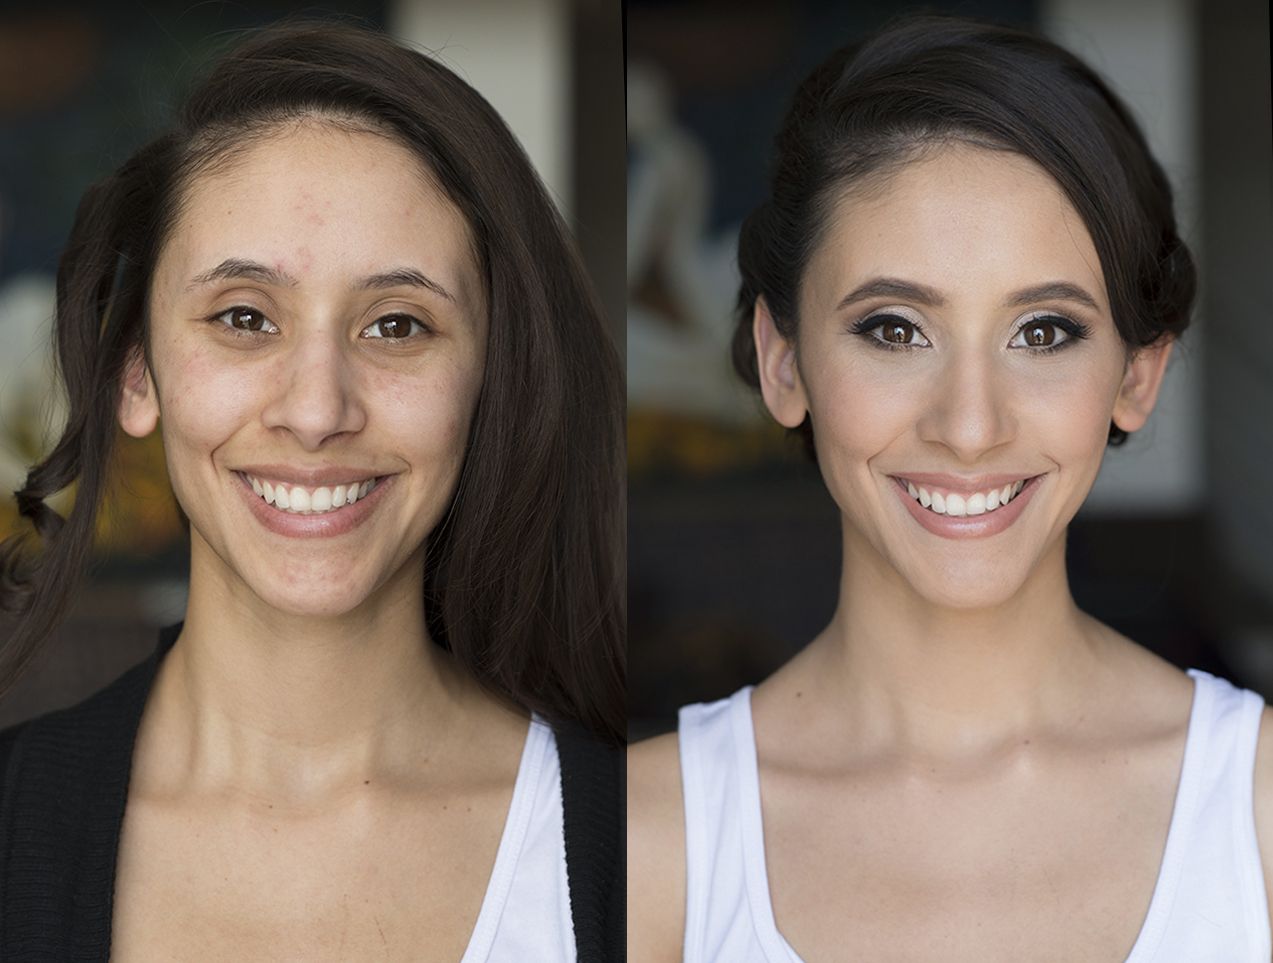 Bridal makeup and hair trial by Beauty Affair Los Angeles souther CA bride to be for web.jpg